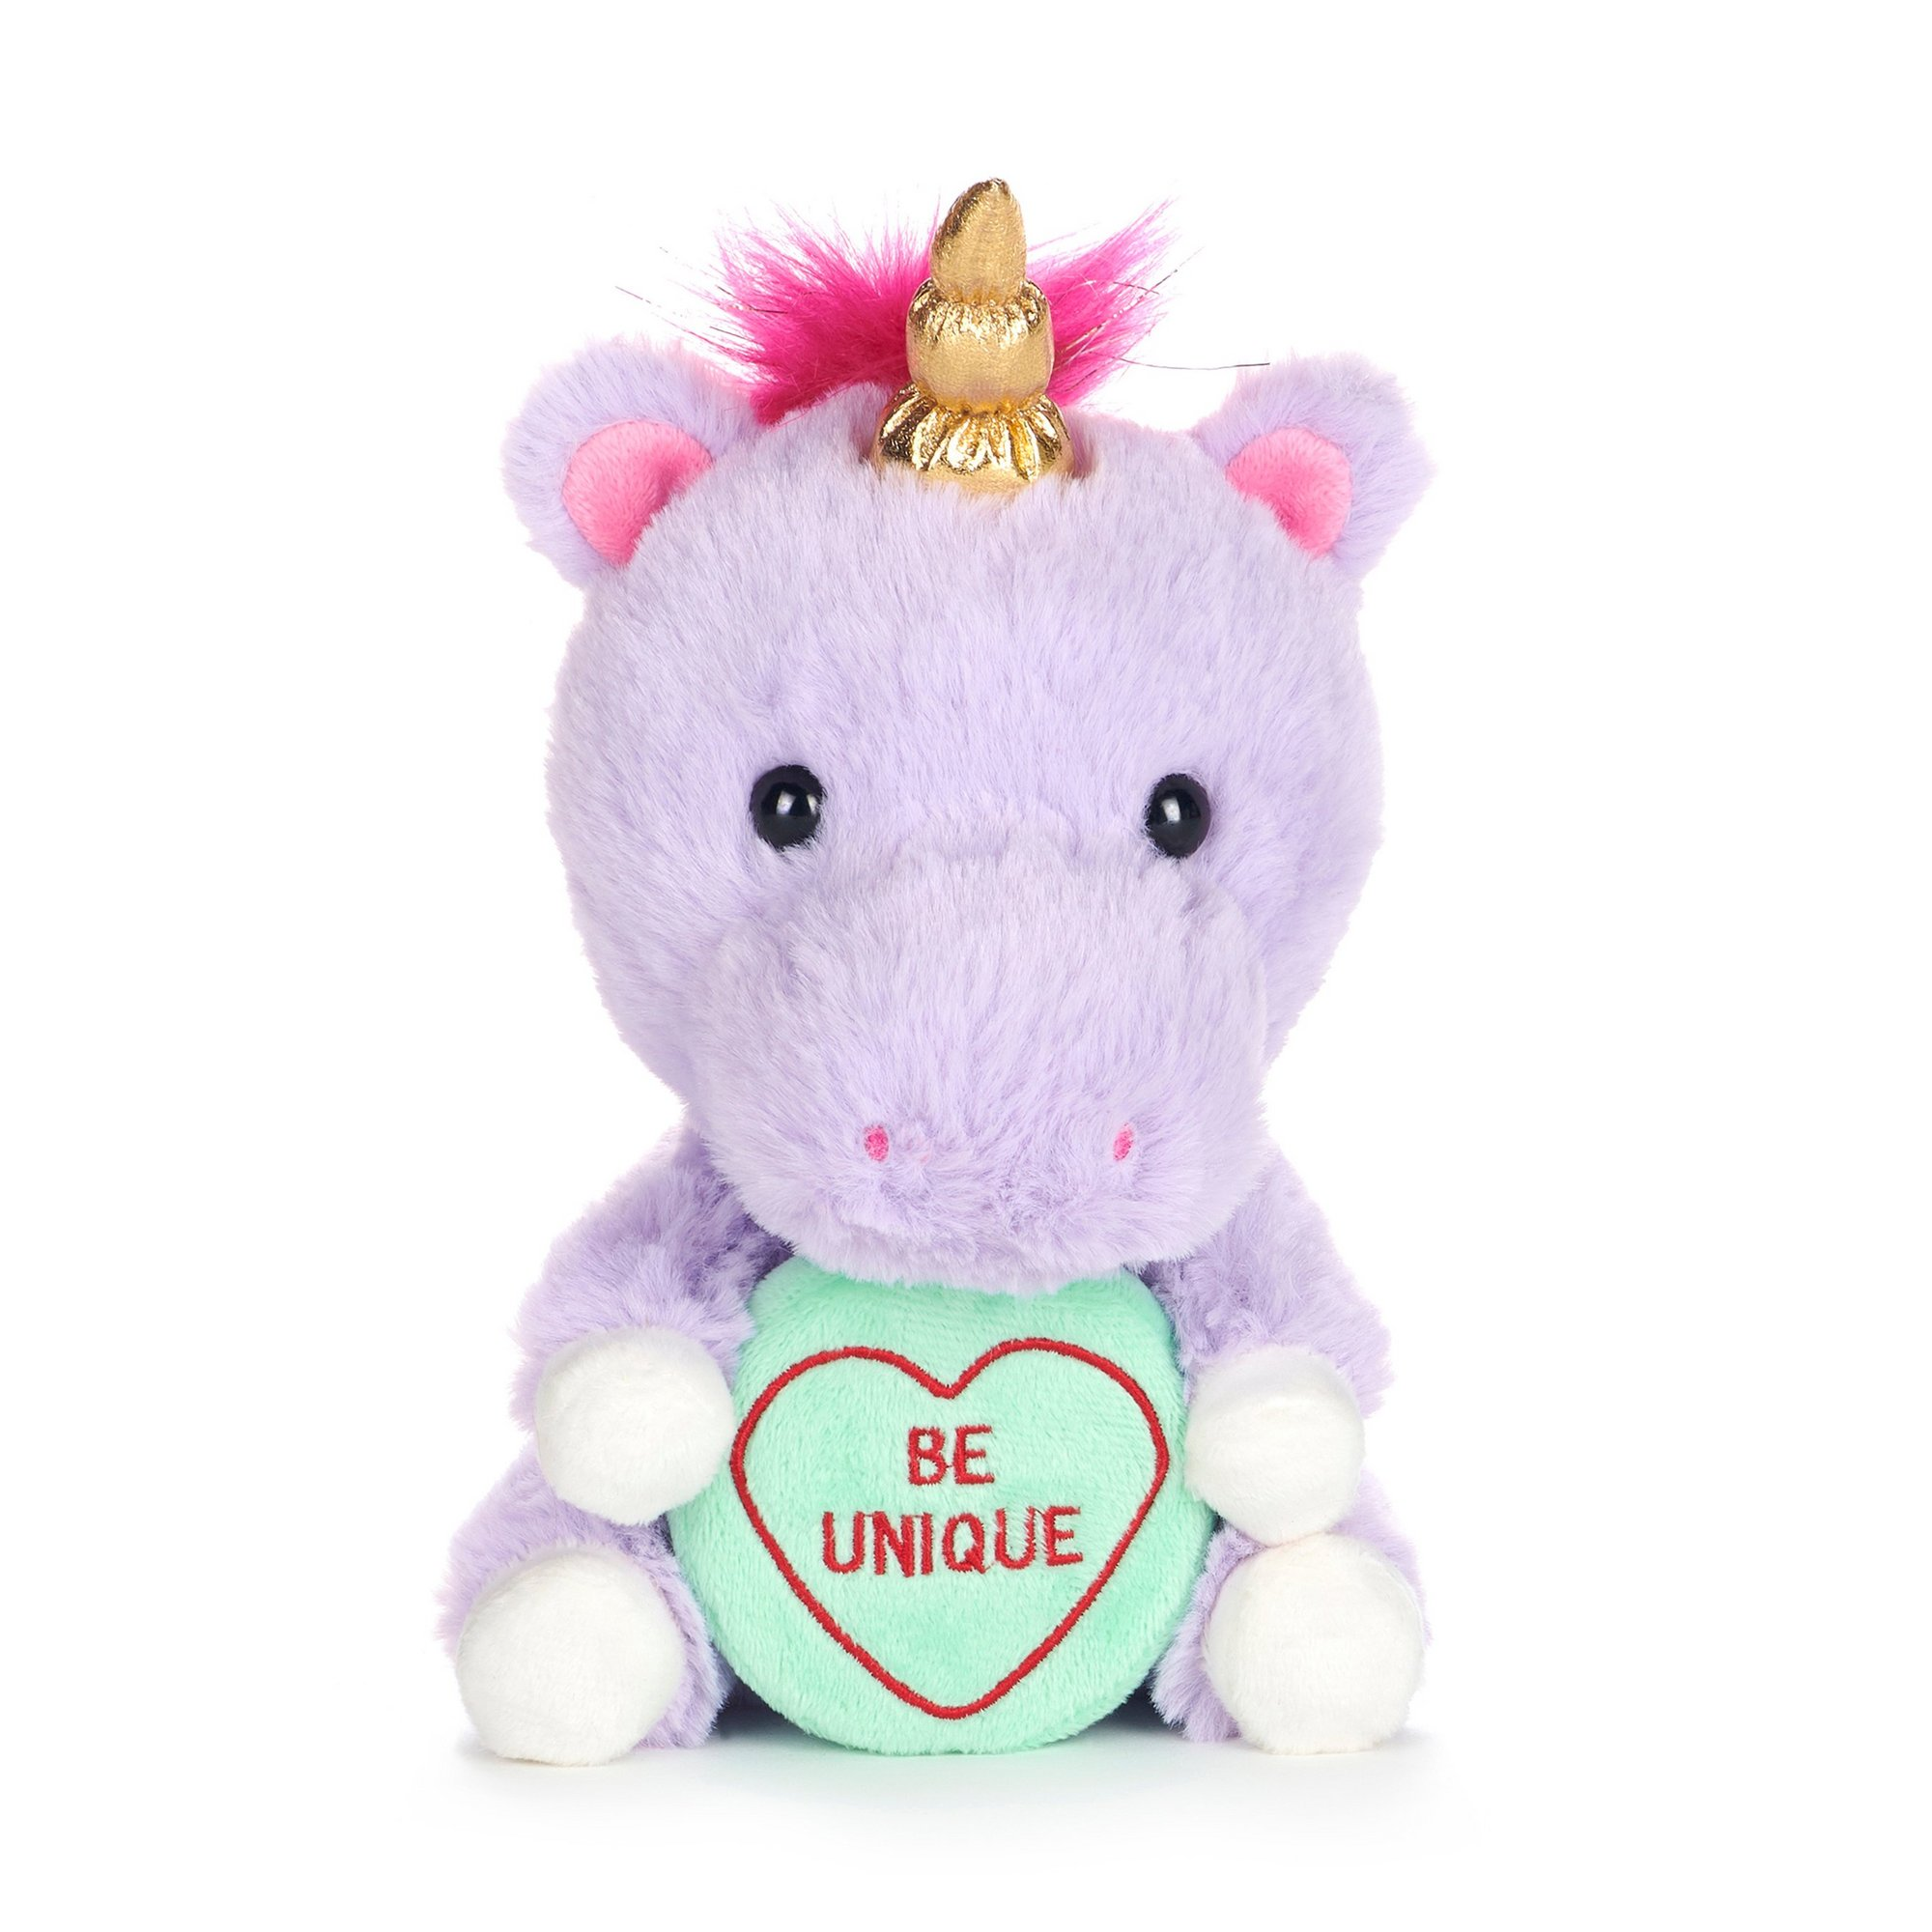 Image of Love Hearts - Unicorn Be Unique Soft Toy